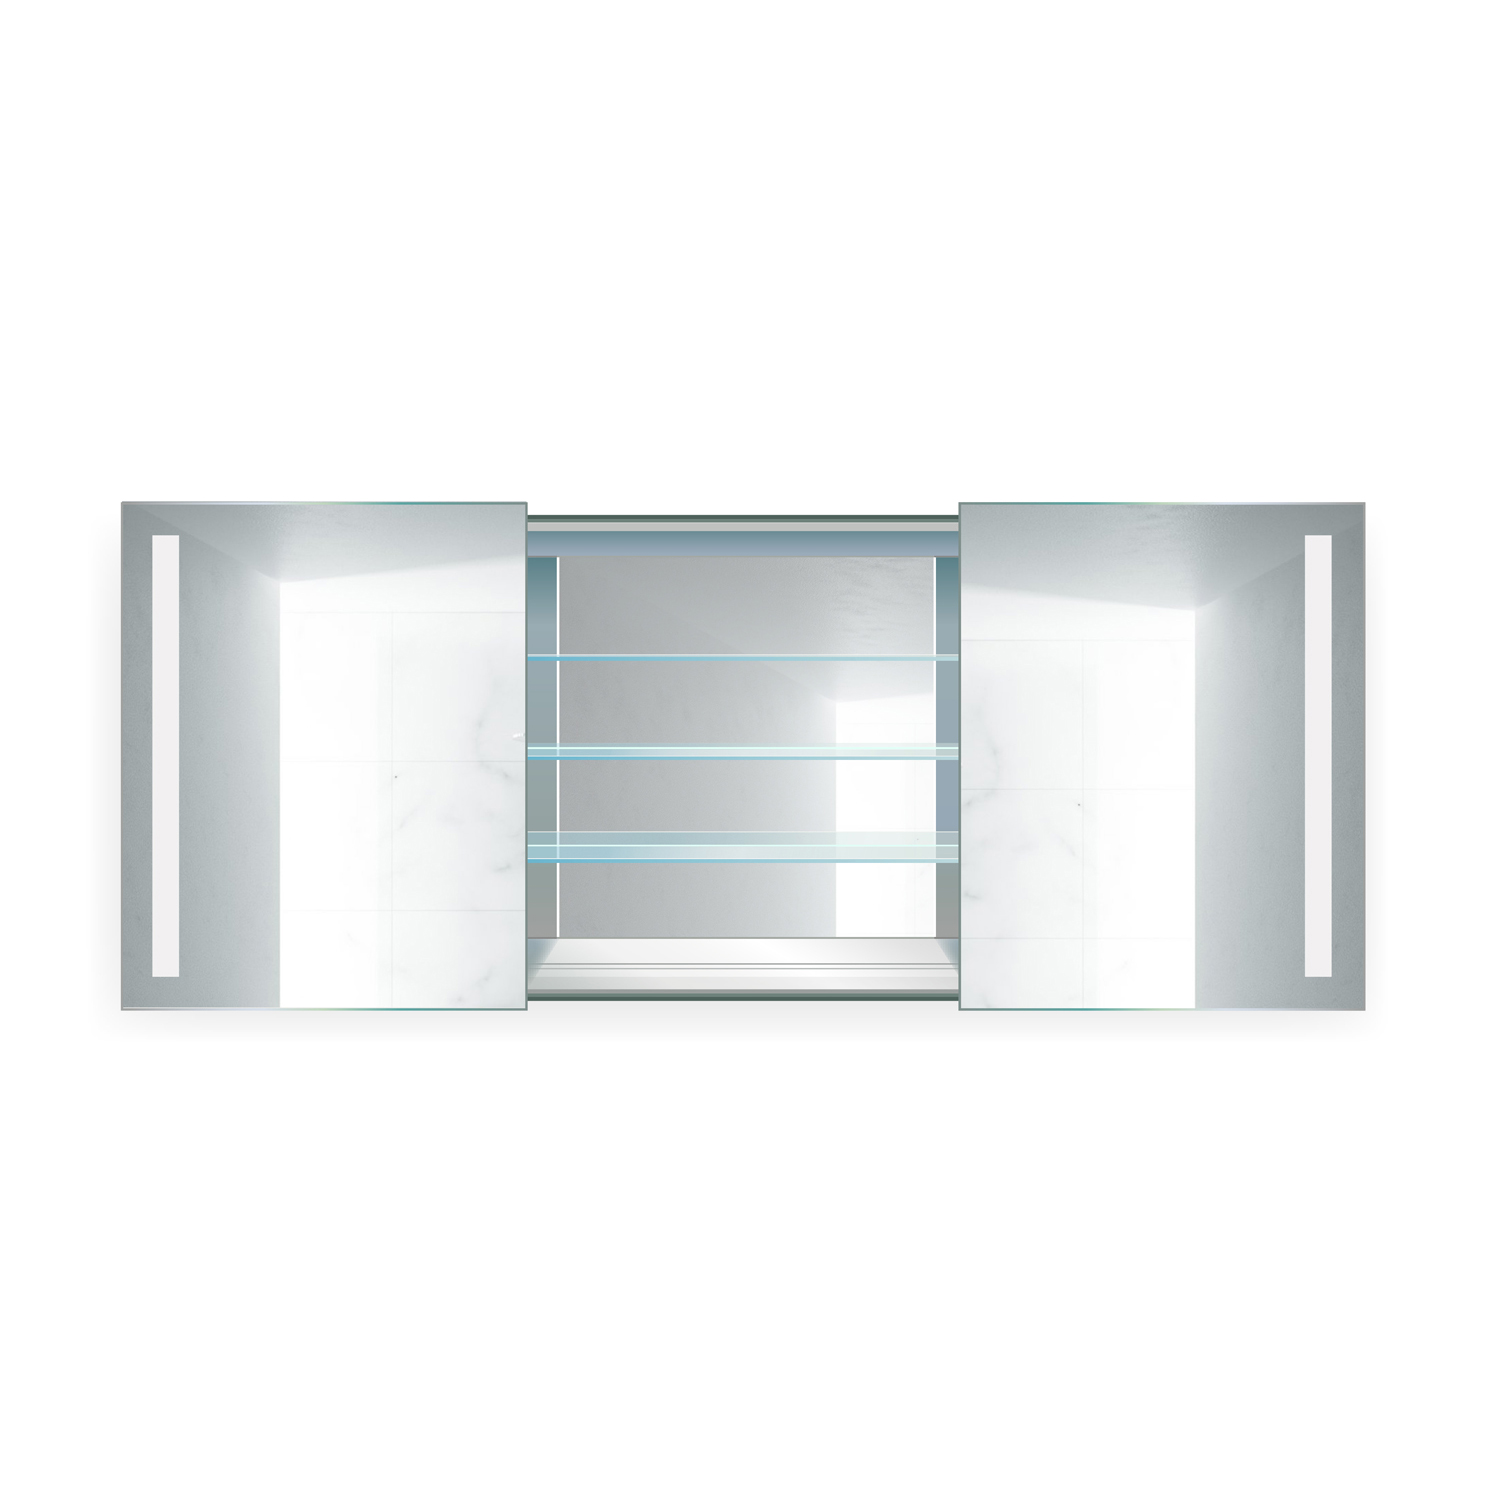 Rolls Sliding LED Medicine Cabinet 48″ X 30″ w/Dimmer & Defogger | Lighted 2 Sliding Mirror Doors